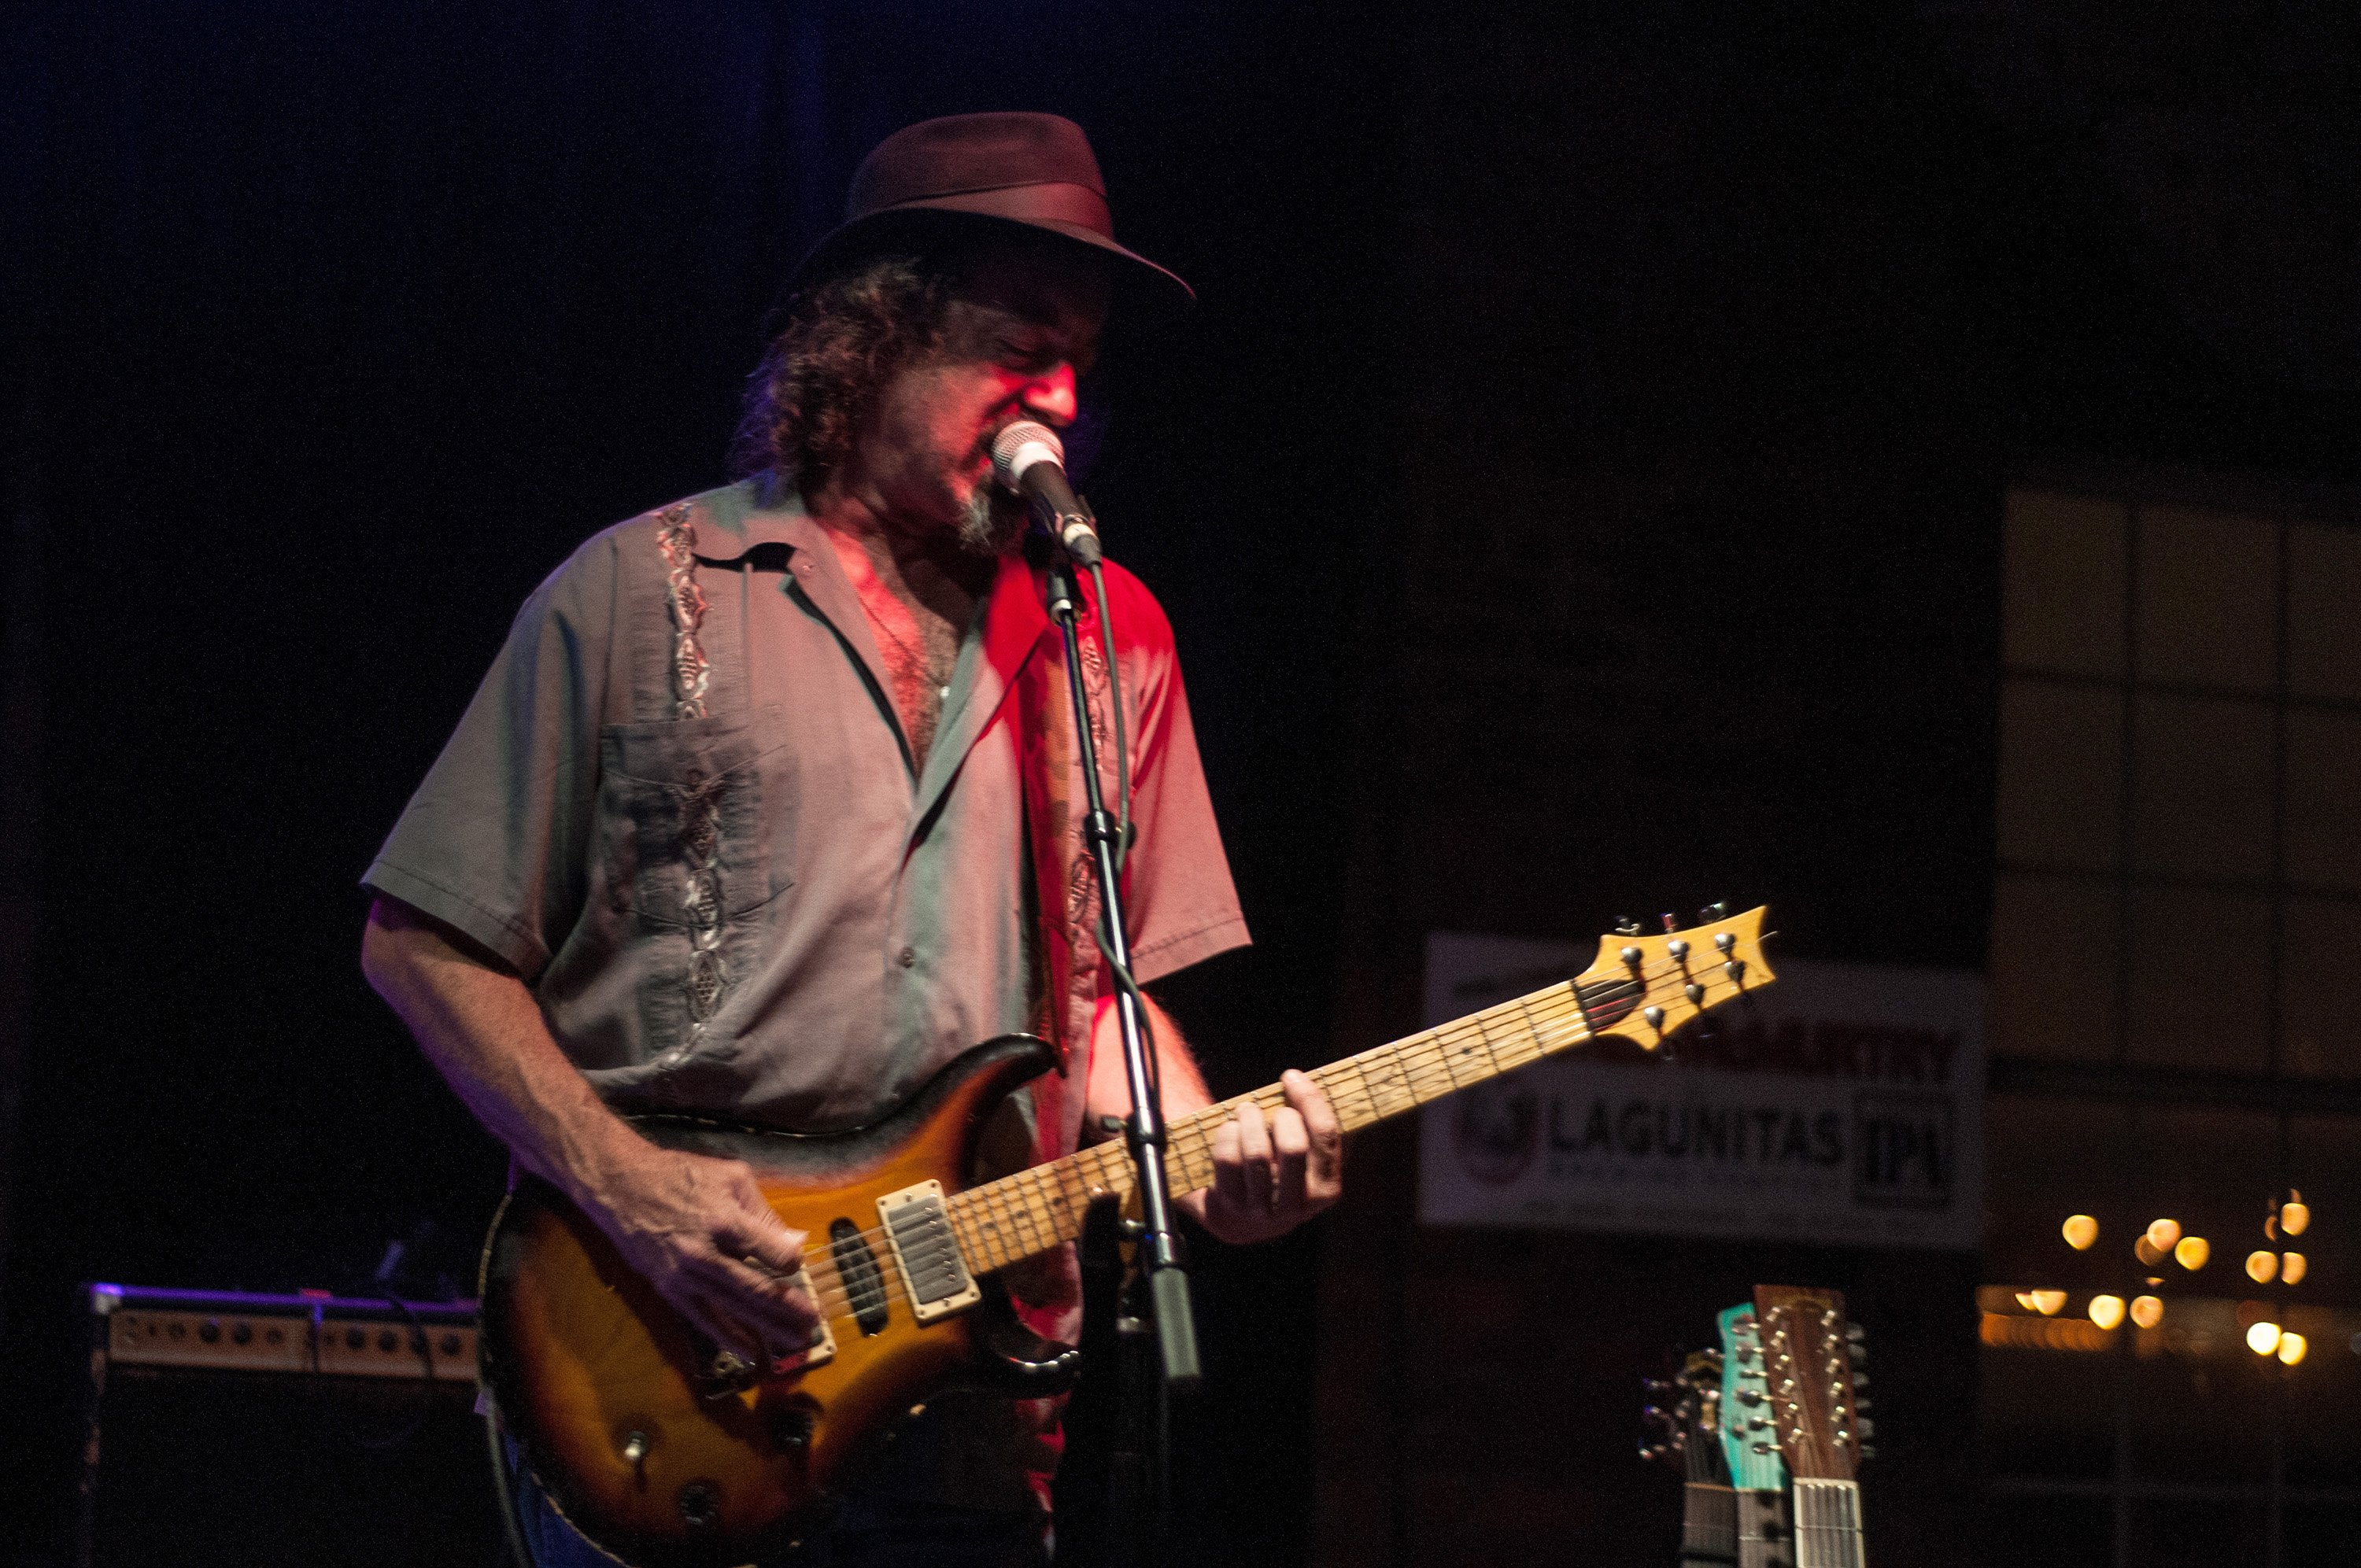 NASHVILLE, TN -  OCT 11:  James McMurtry performs at the Hi-Watt club in Nashville, Tennessee, on October 11, 2012. (Photo by